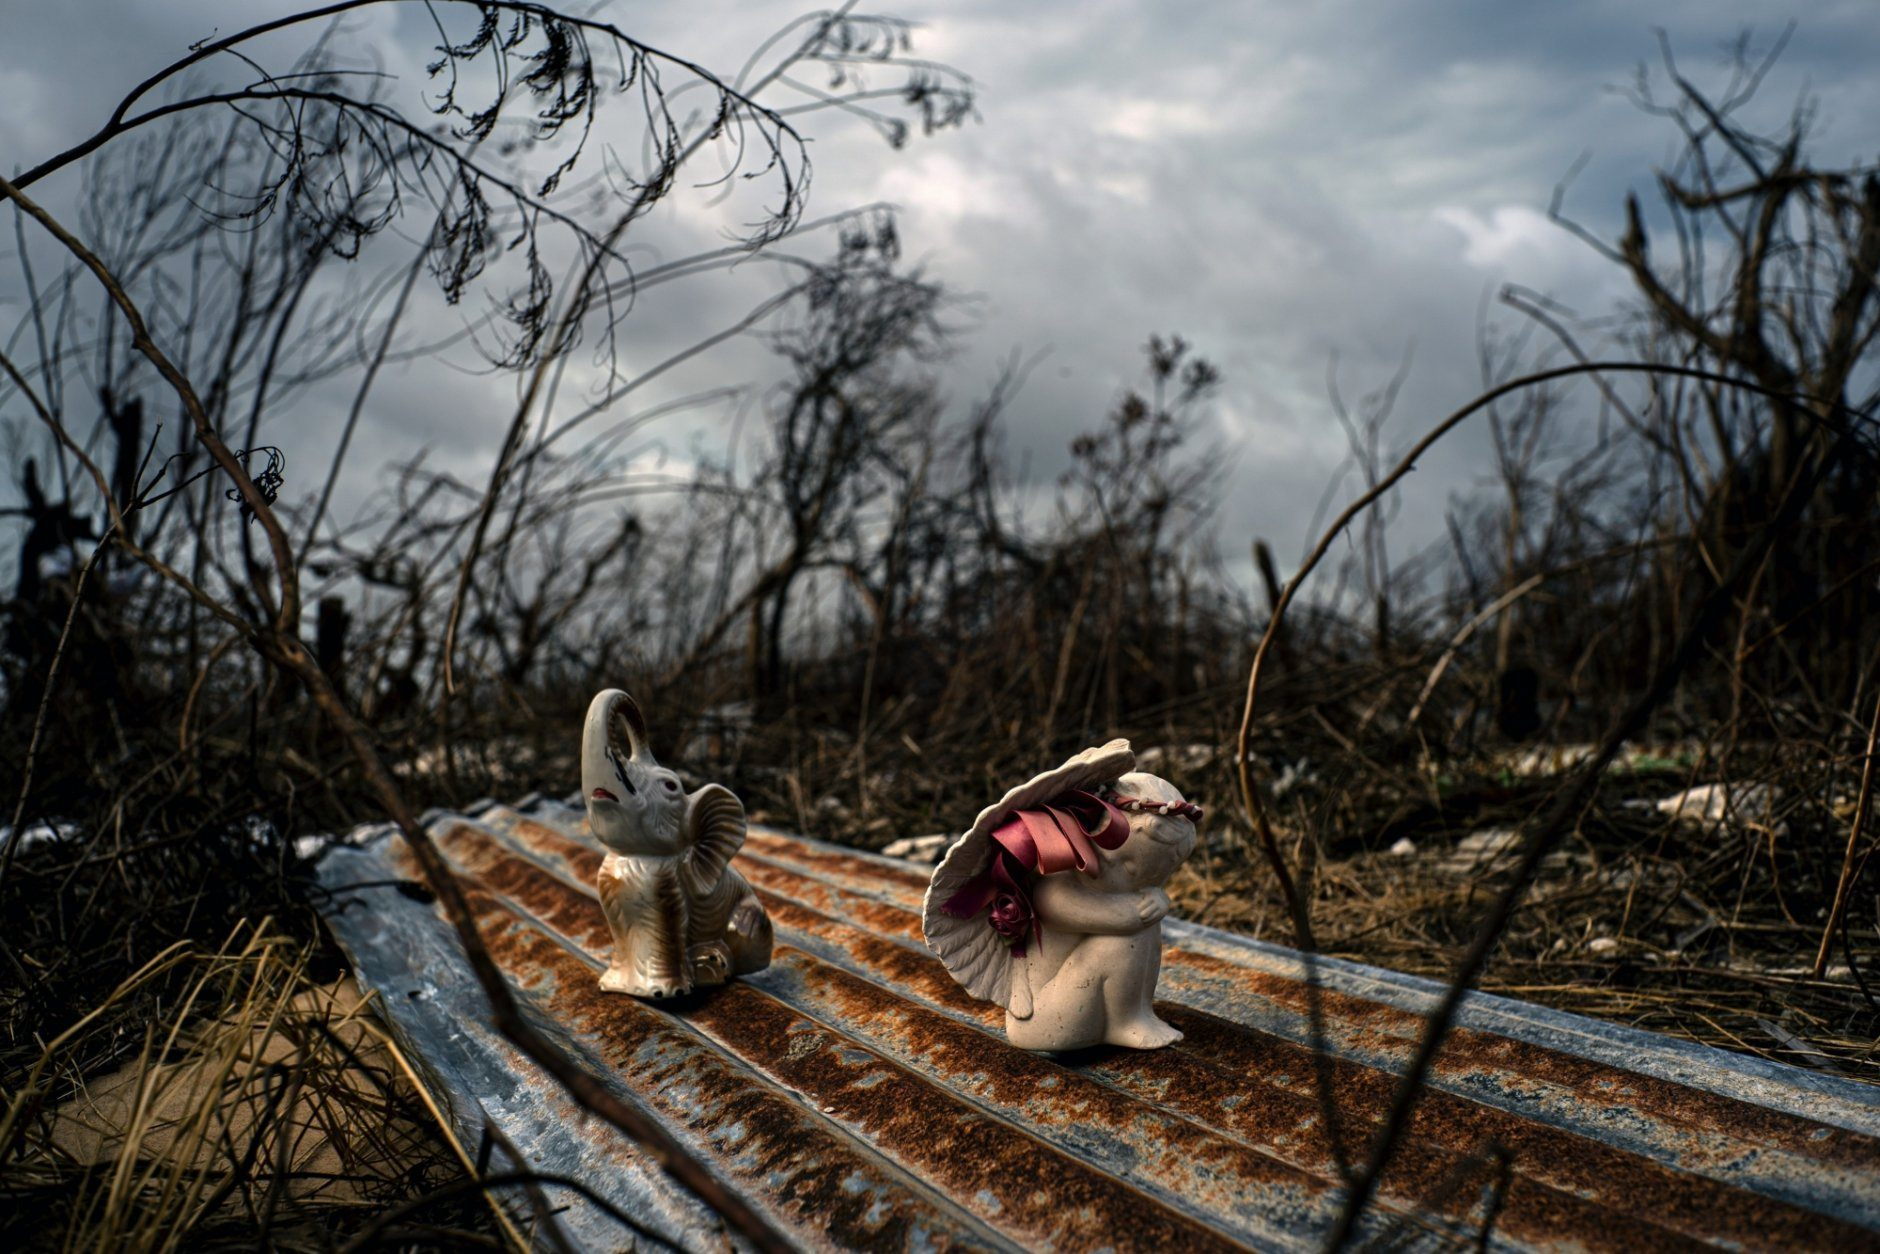 Porcelain figures rest among the remains of a shattered house at the aftermath of Hurricane Dorian in Freetown, Grand Bahama, Bahamas, Friday Sept. 13, 2019. (AP Photo/Ramon Espinosa)